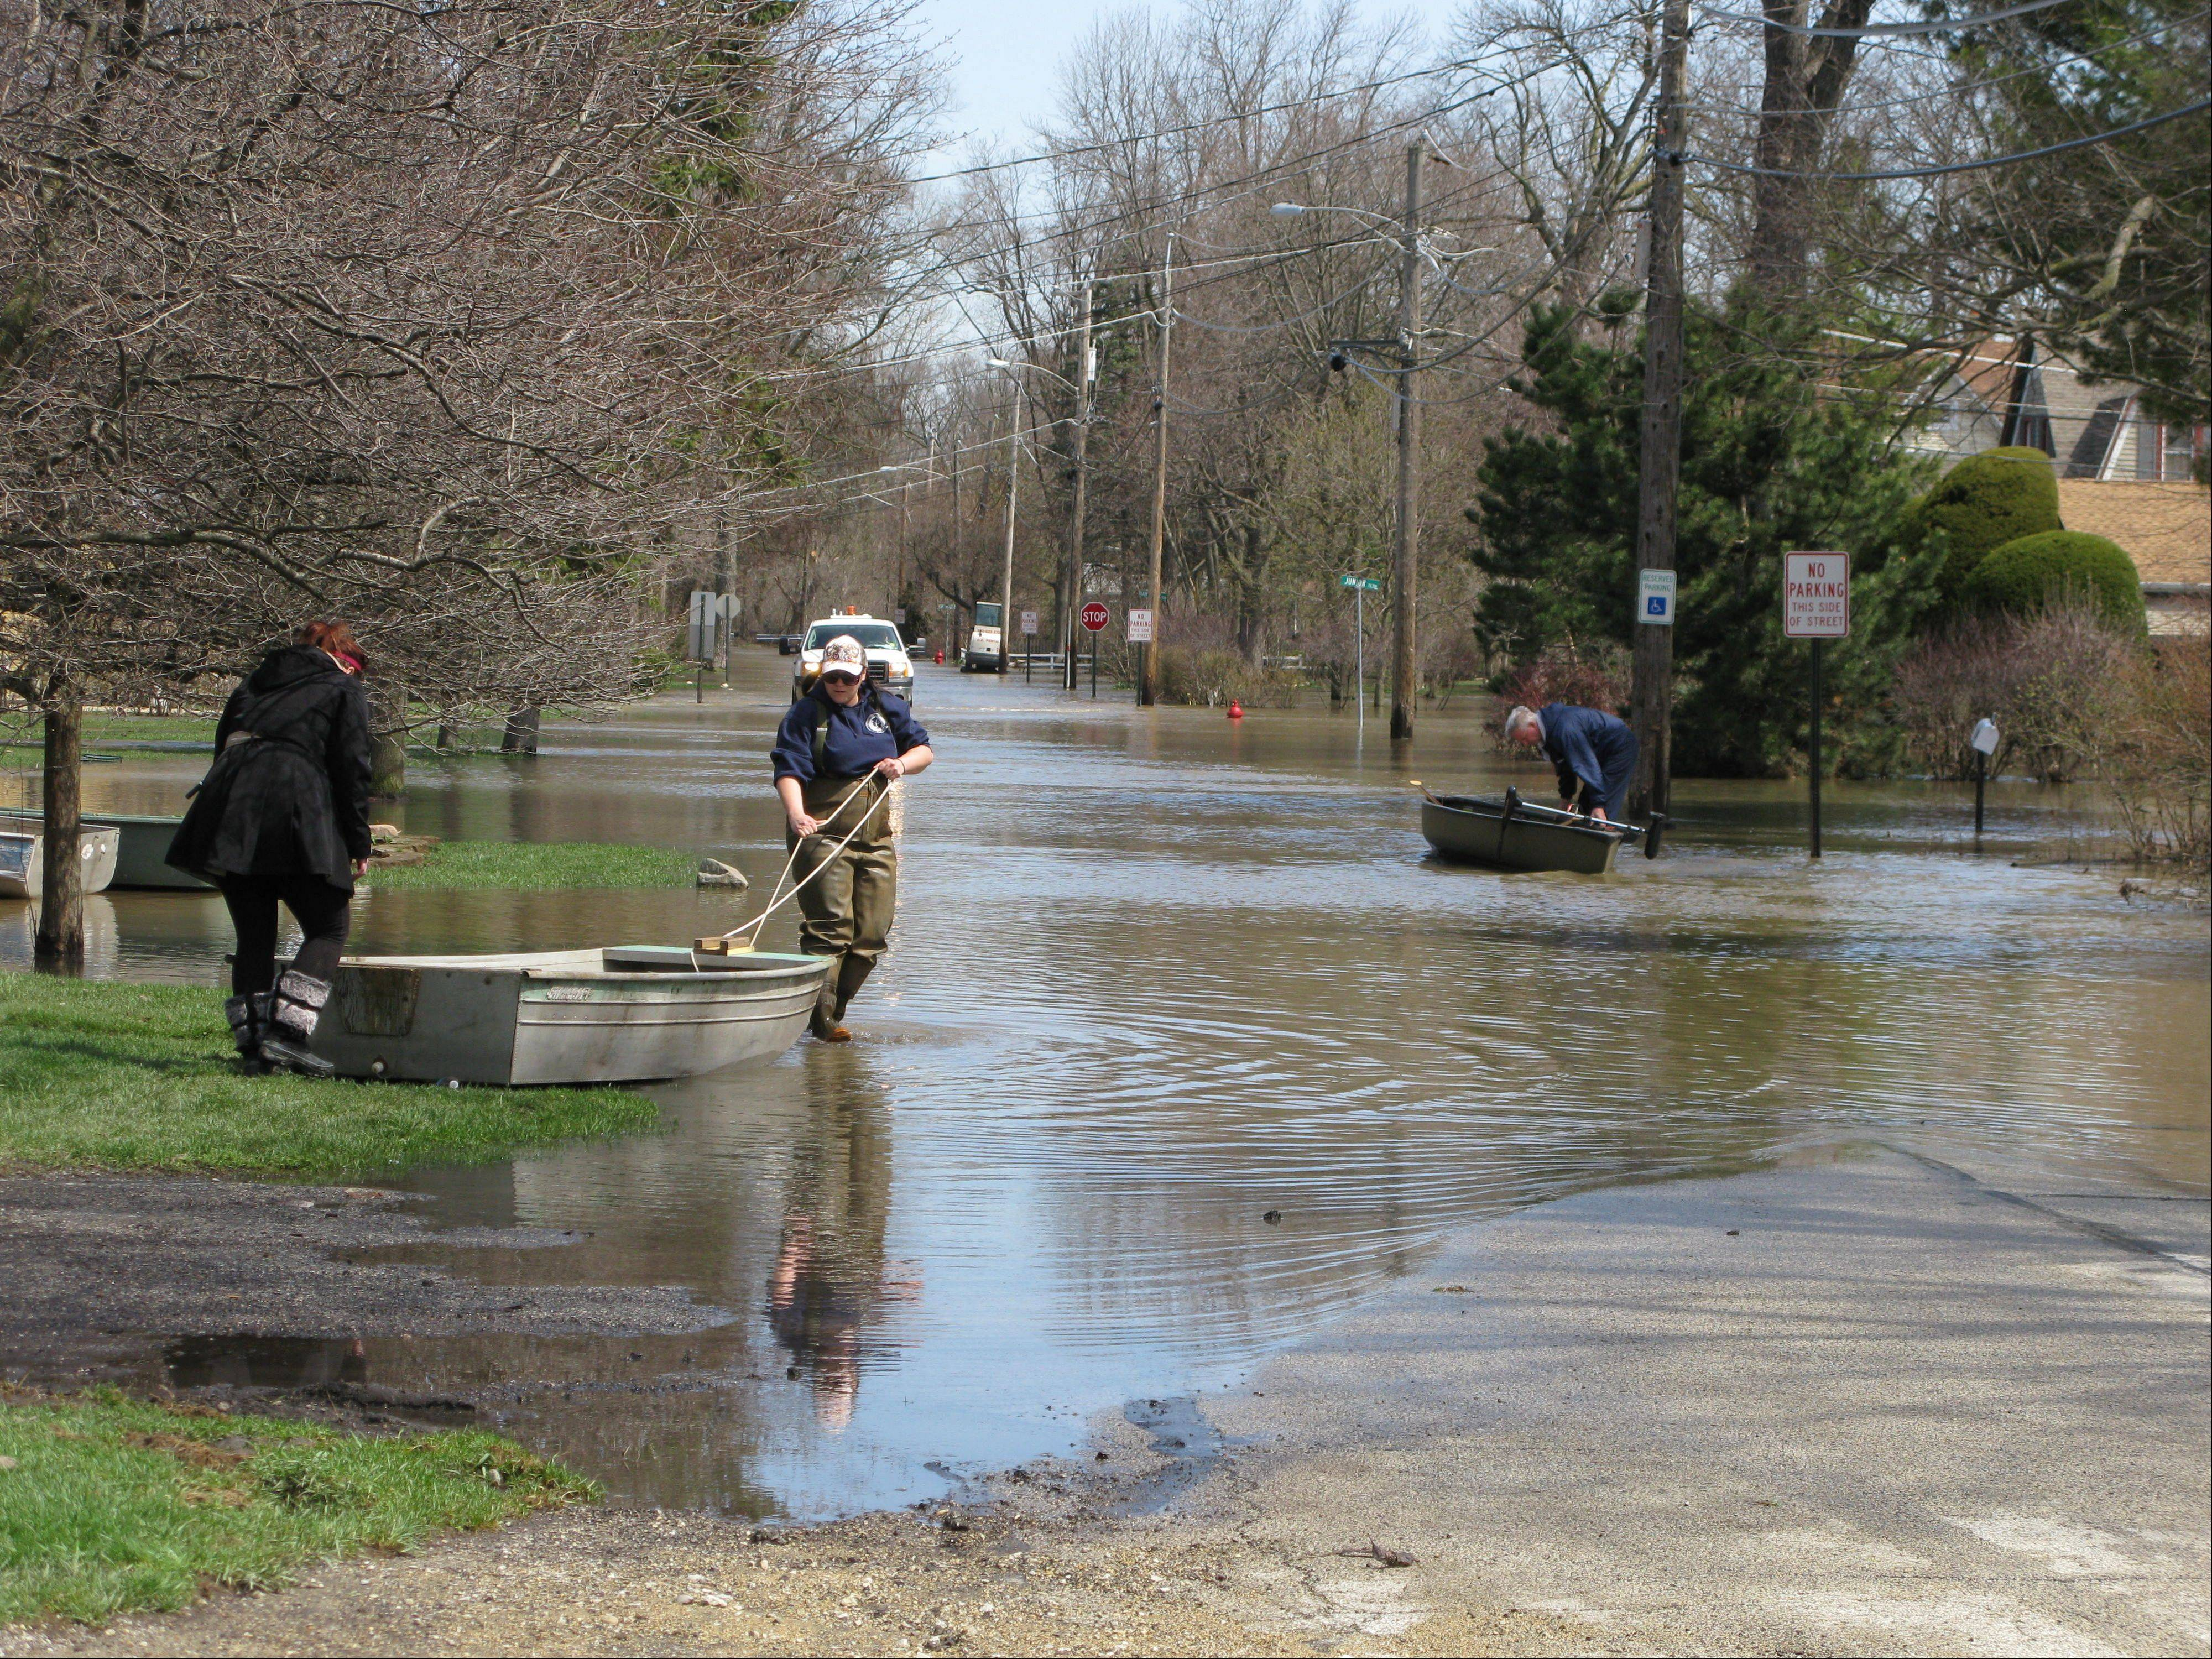 Des Plaines residents and city crews began post-flooding cleanup and damage assessment in earnest Monday.